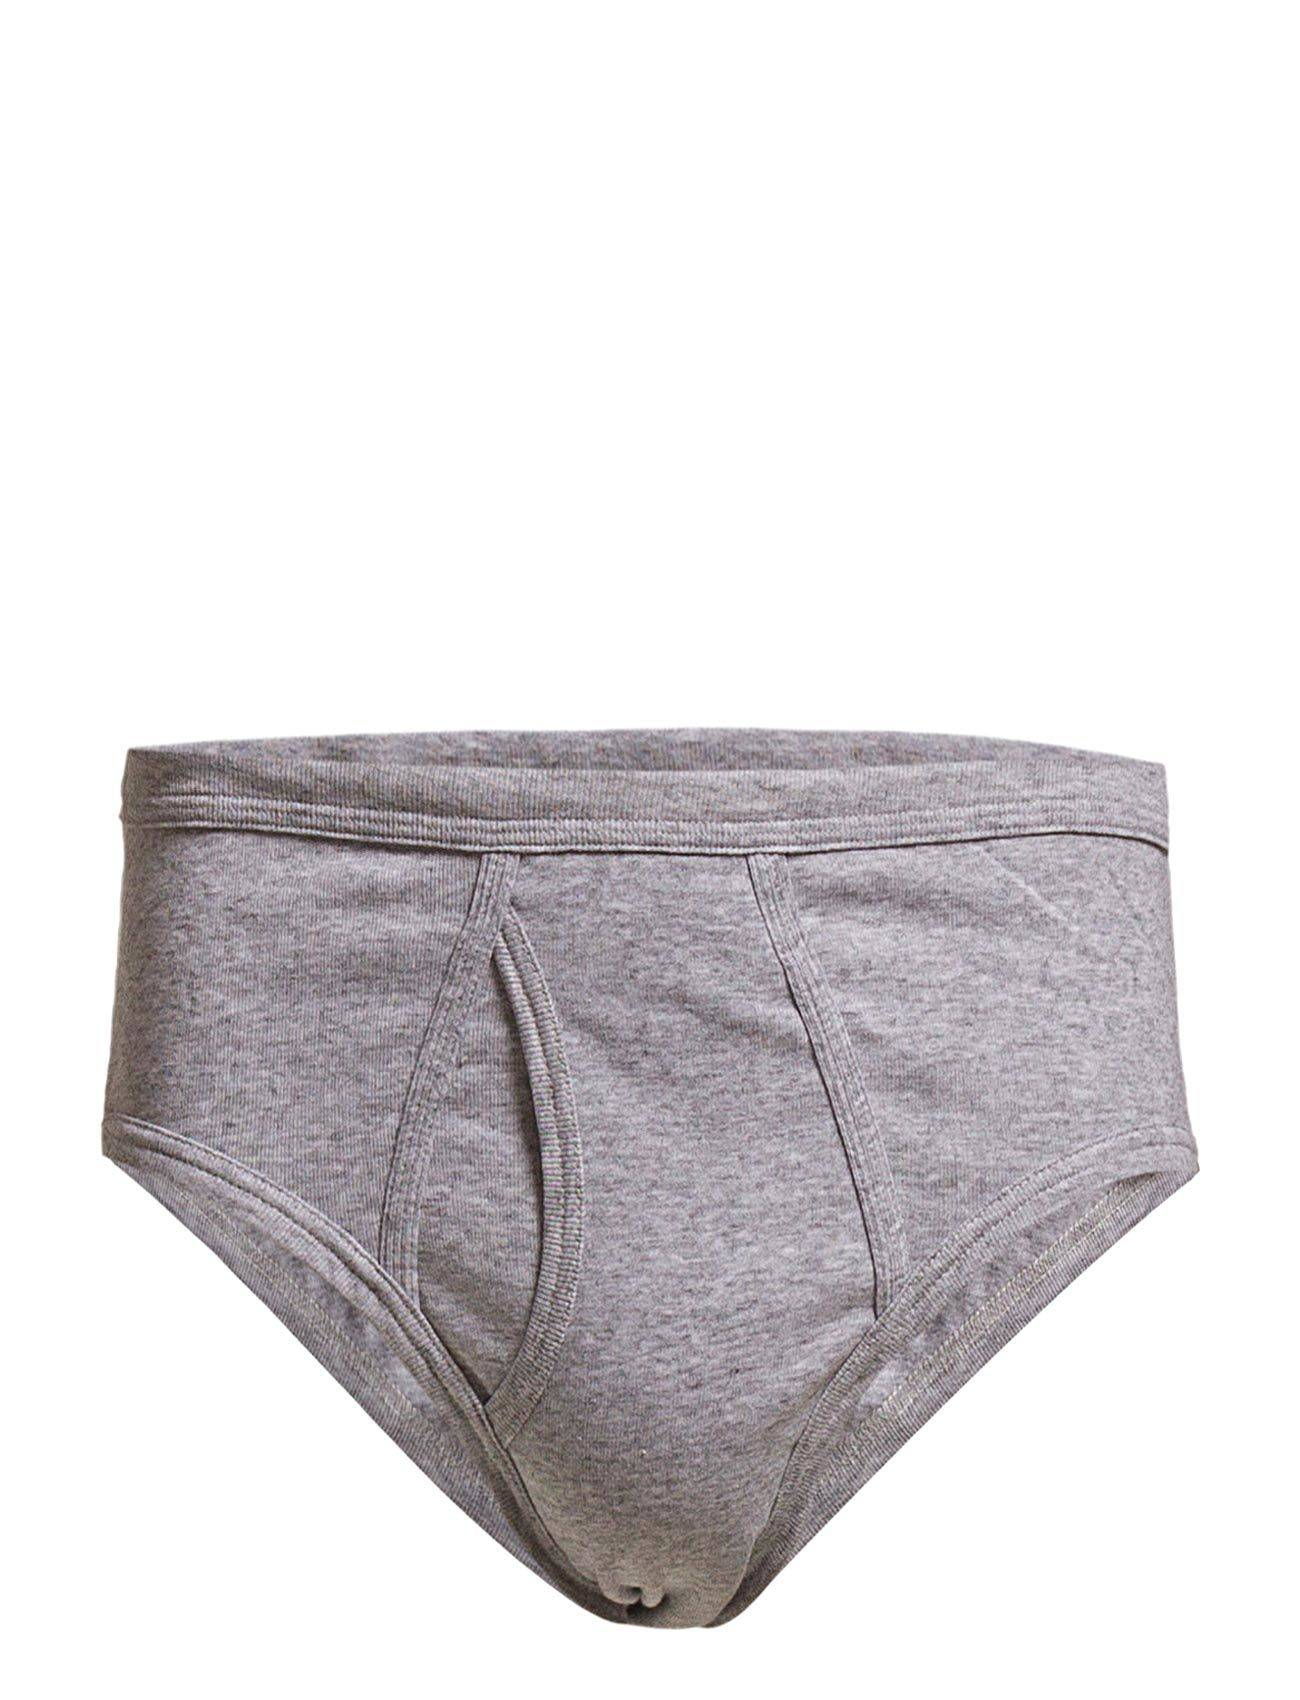 Jbs Brief, With Fly, Original